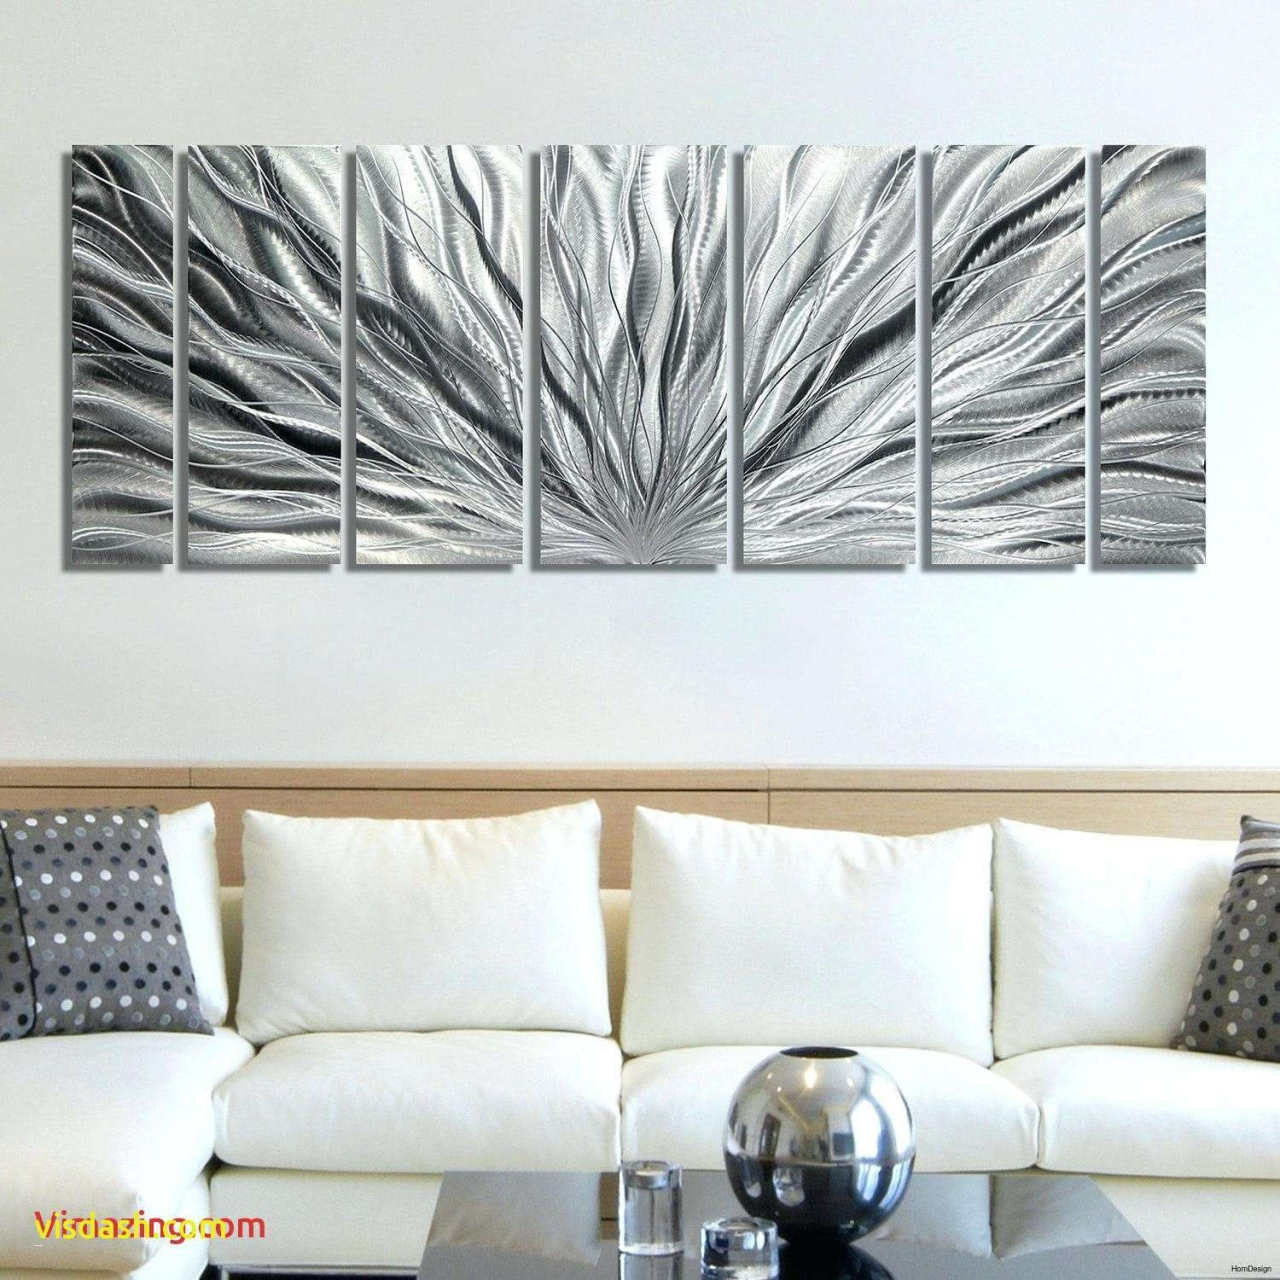 Sun Wall Sculpture Wall Decal Borders Awesome Wall Decal